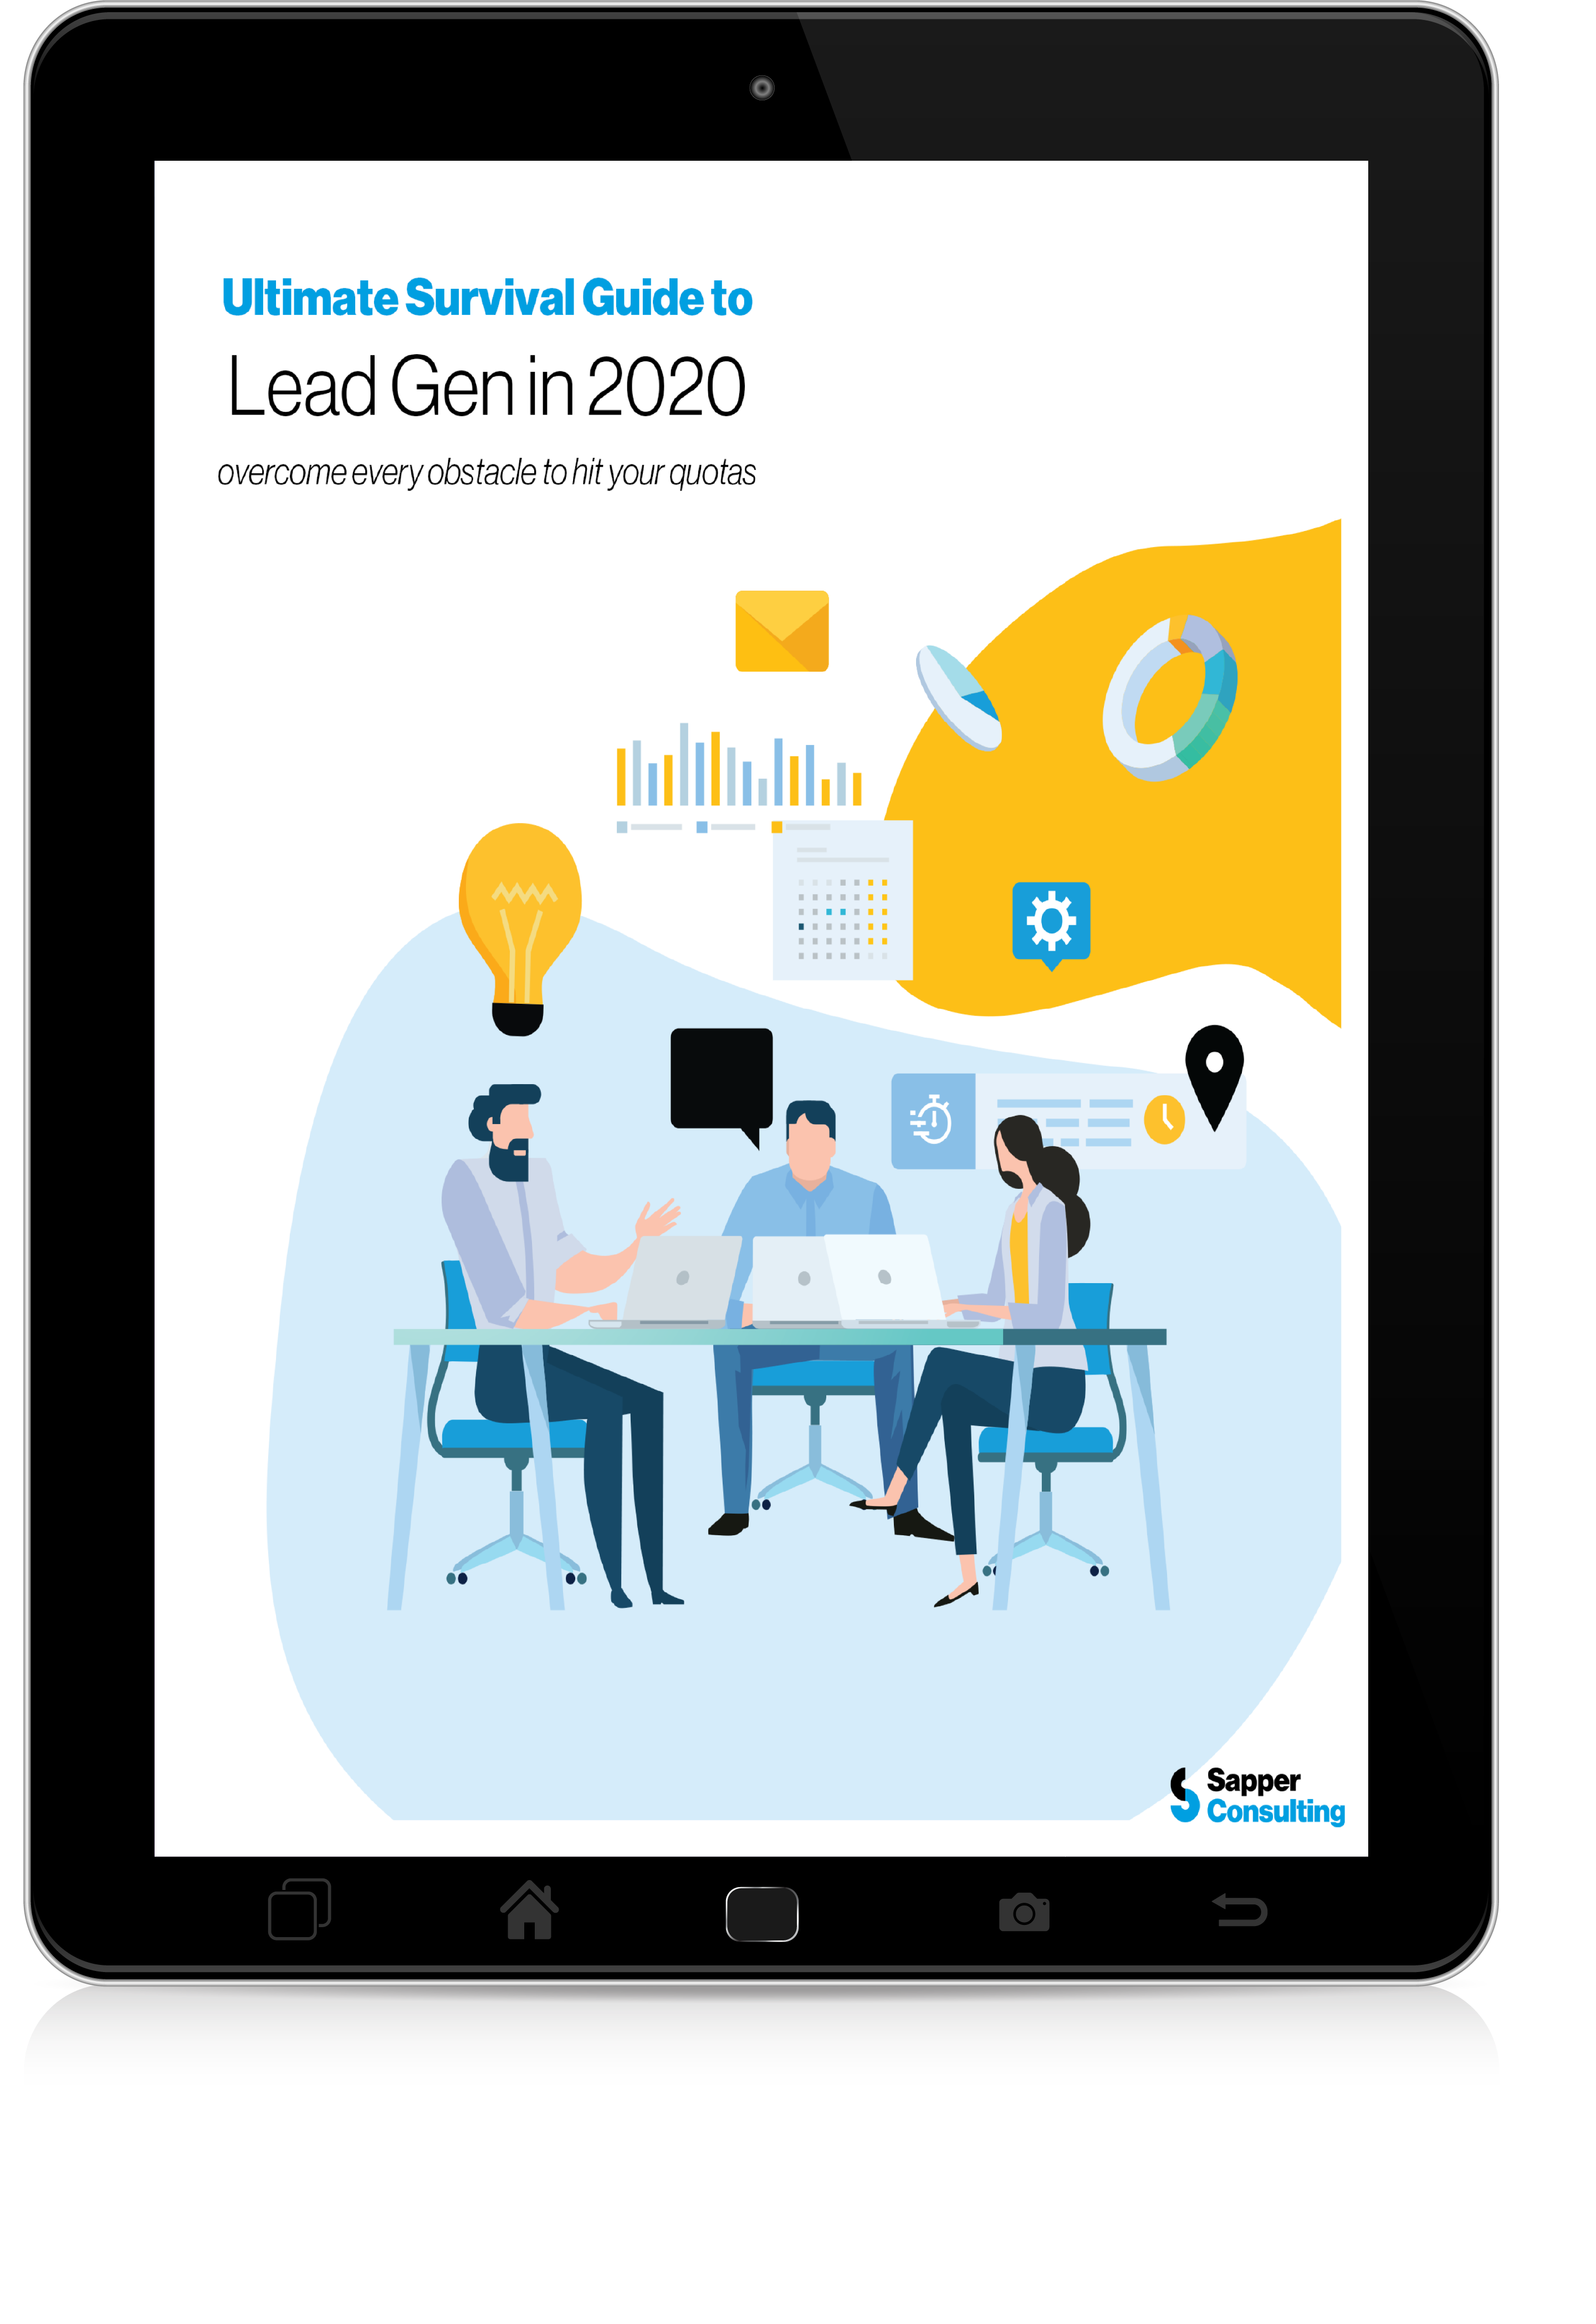 2020 Lead Generation Survival Guide